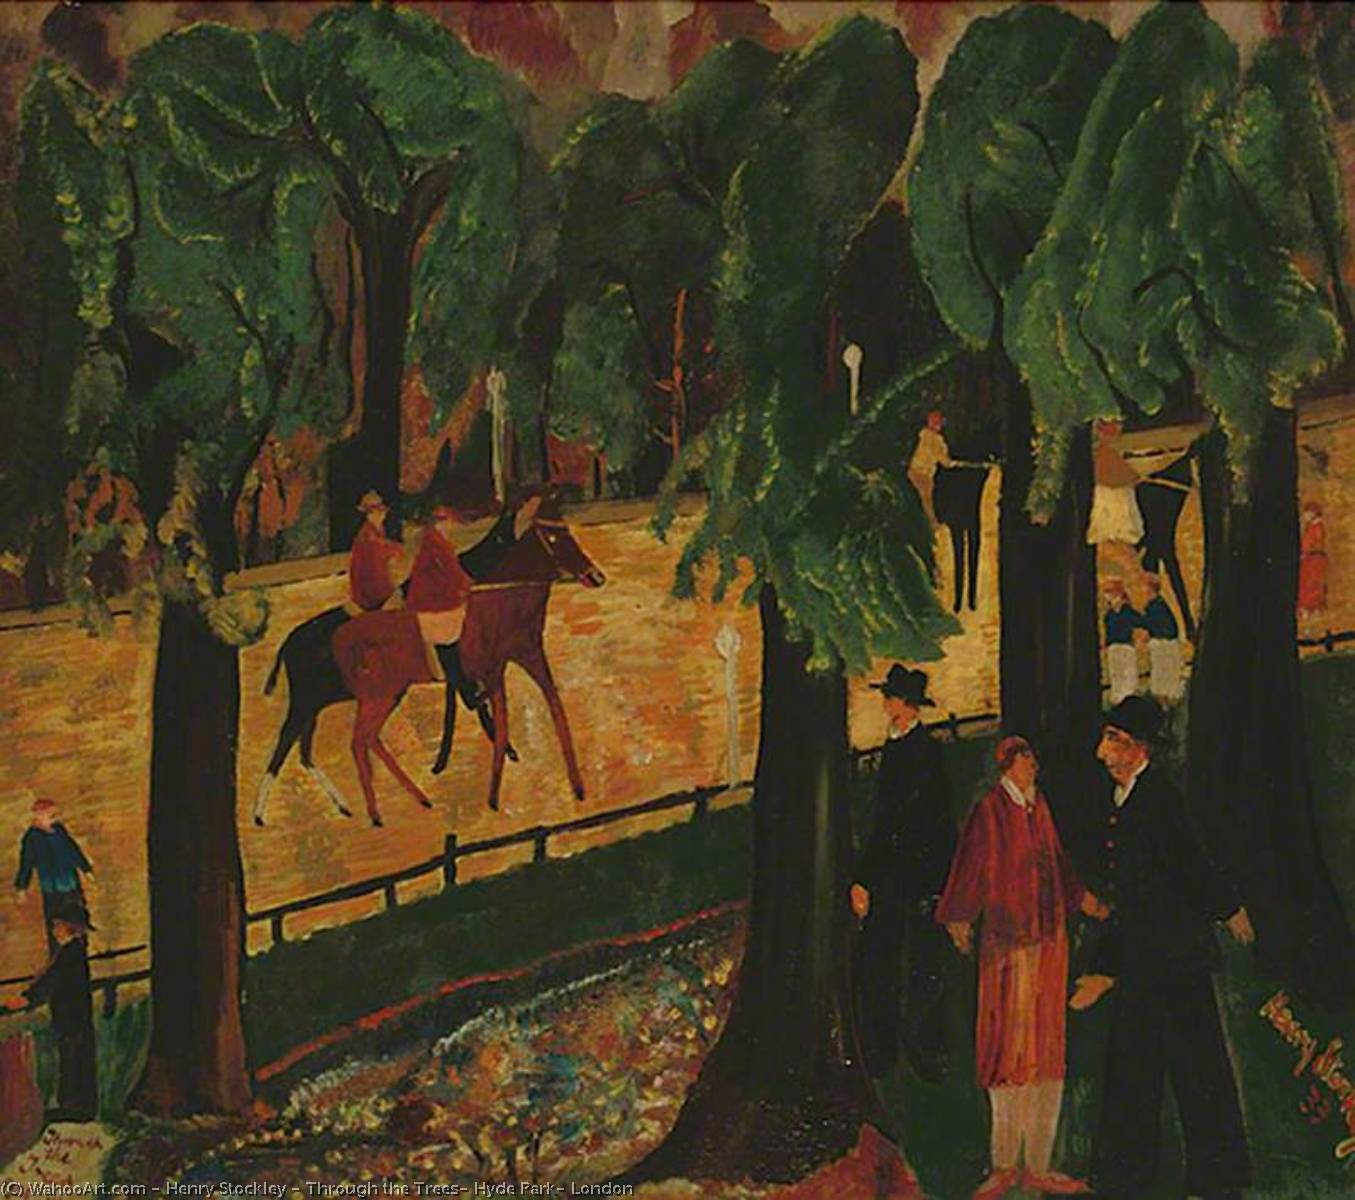 Through the Trees, Hyde Park, London, 1933 by Henry Stockley | Oil Painting | WahooArt.com